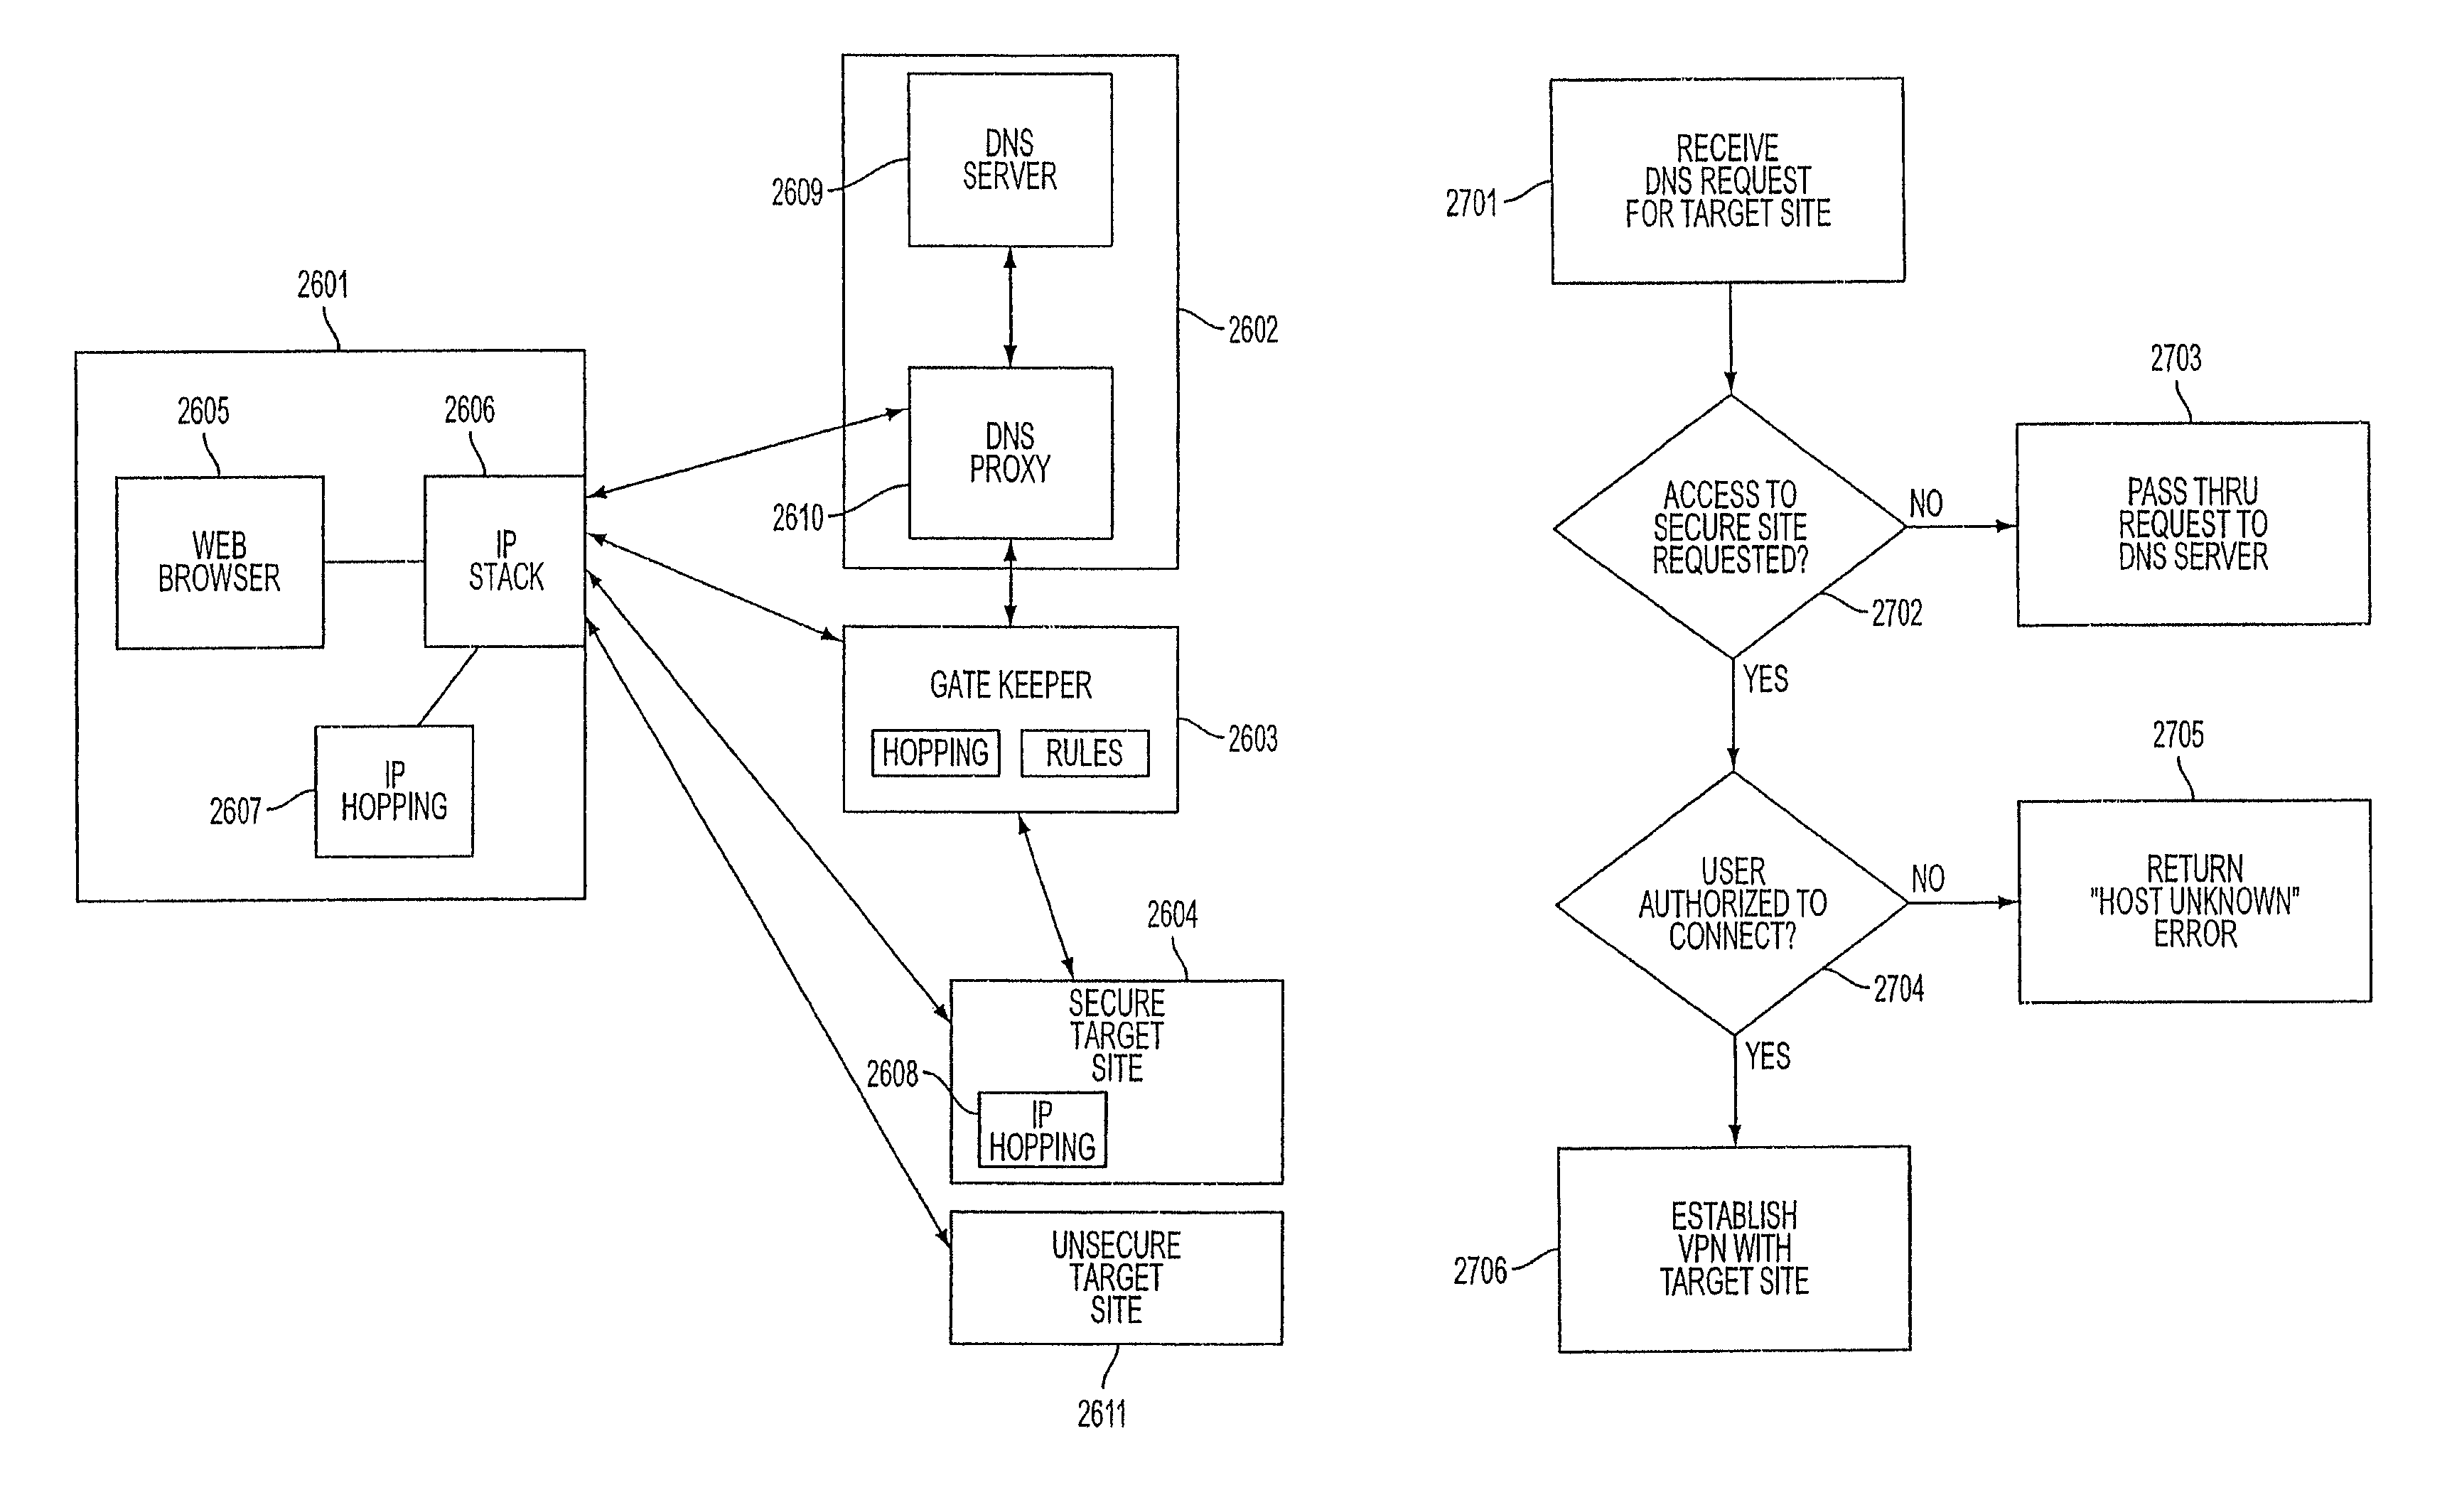 Patent Us 8504697 B2 Fish Simple Foil Circuits Series And Parallel Schematics First Claim